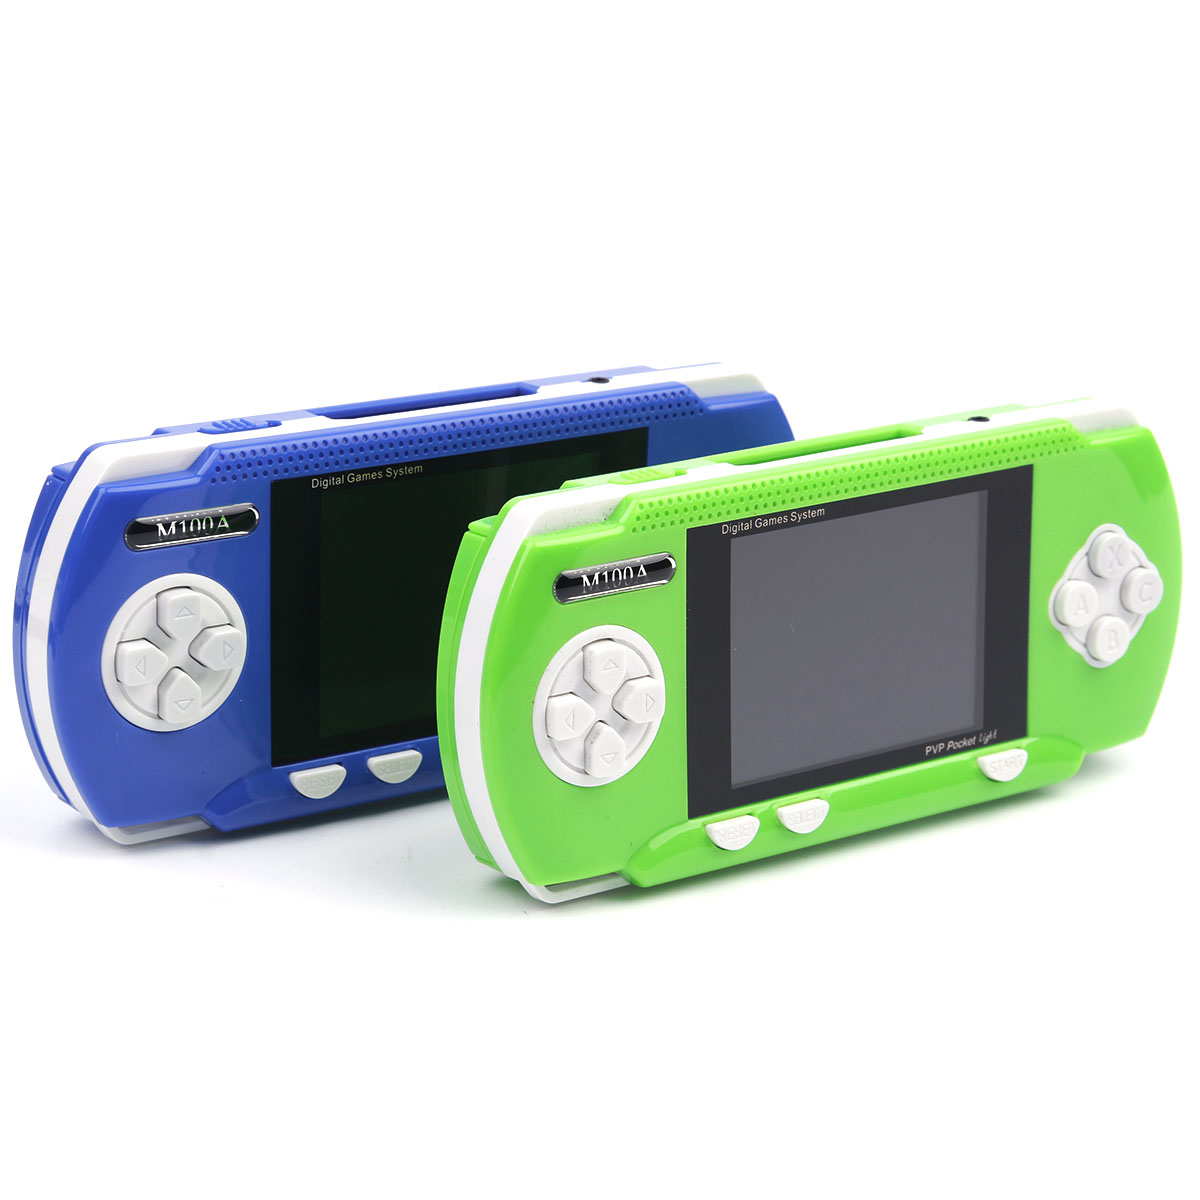 Mini Tetris Child Classic Video Game Player Portable 3 2 Inch Color Pvp Handheld Game Player Built In 328 Game Kid Games Console